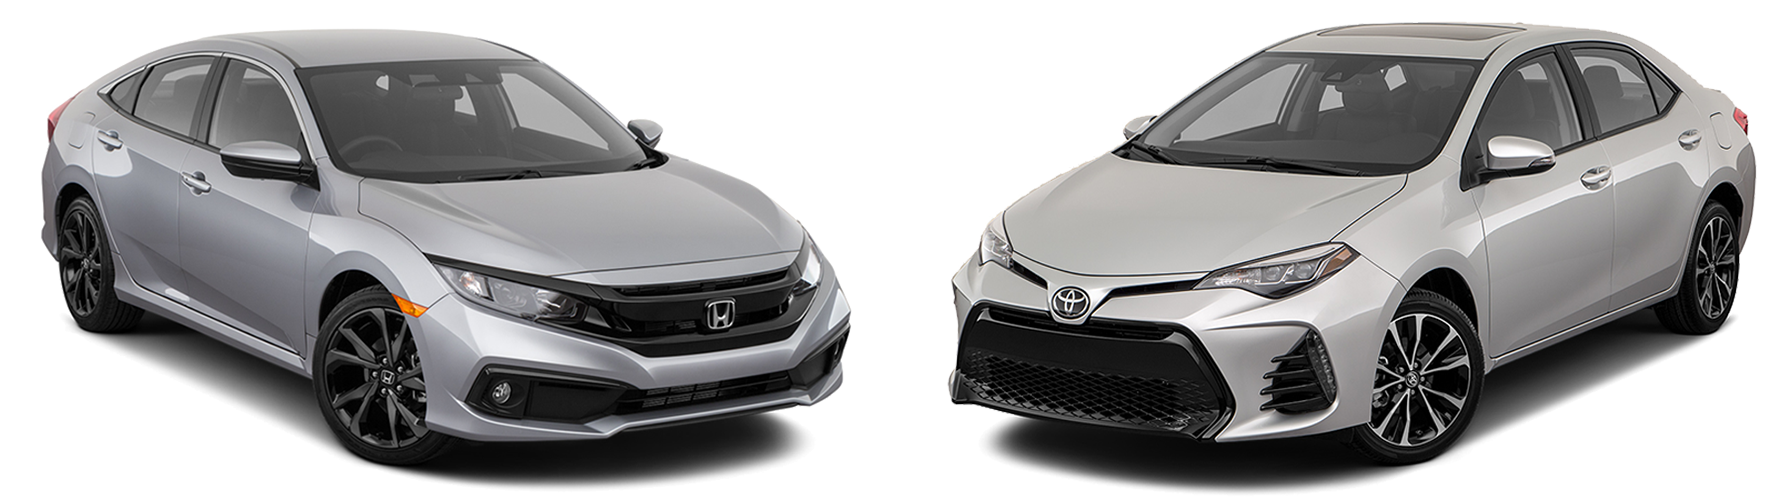 2019 Honda Civic vs. 2019 Toyota Corolla